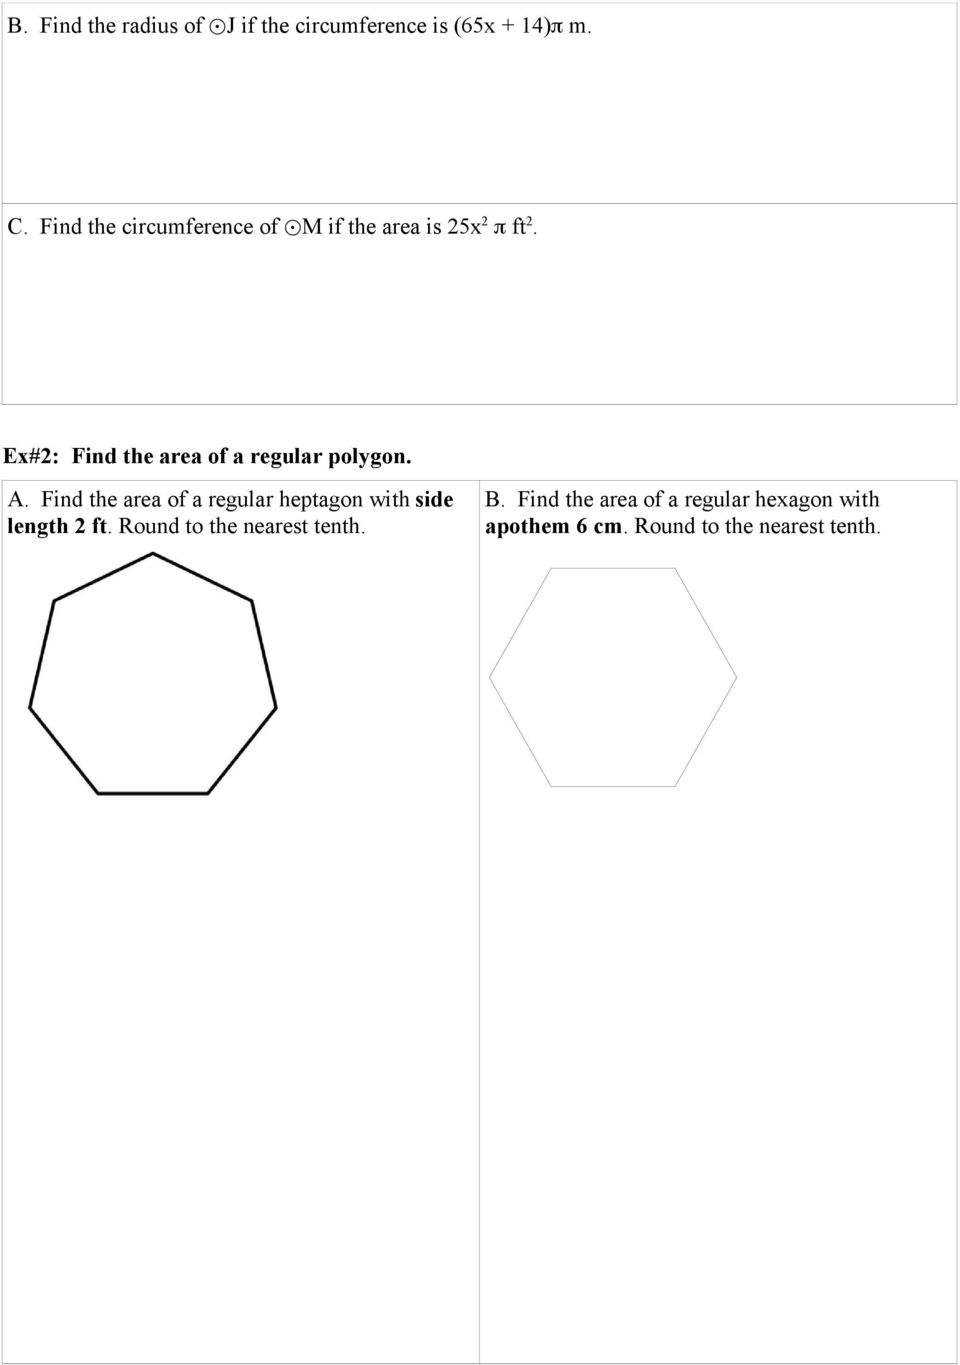 Ex#2: Find the area of a regular polygon. A.